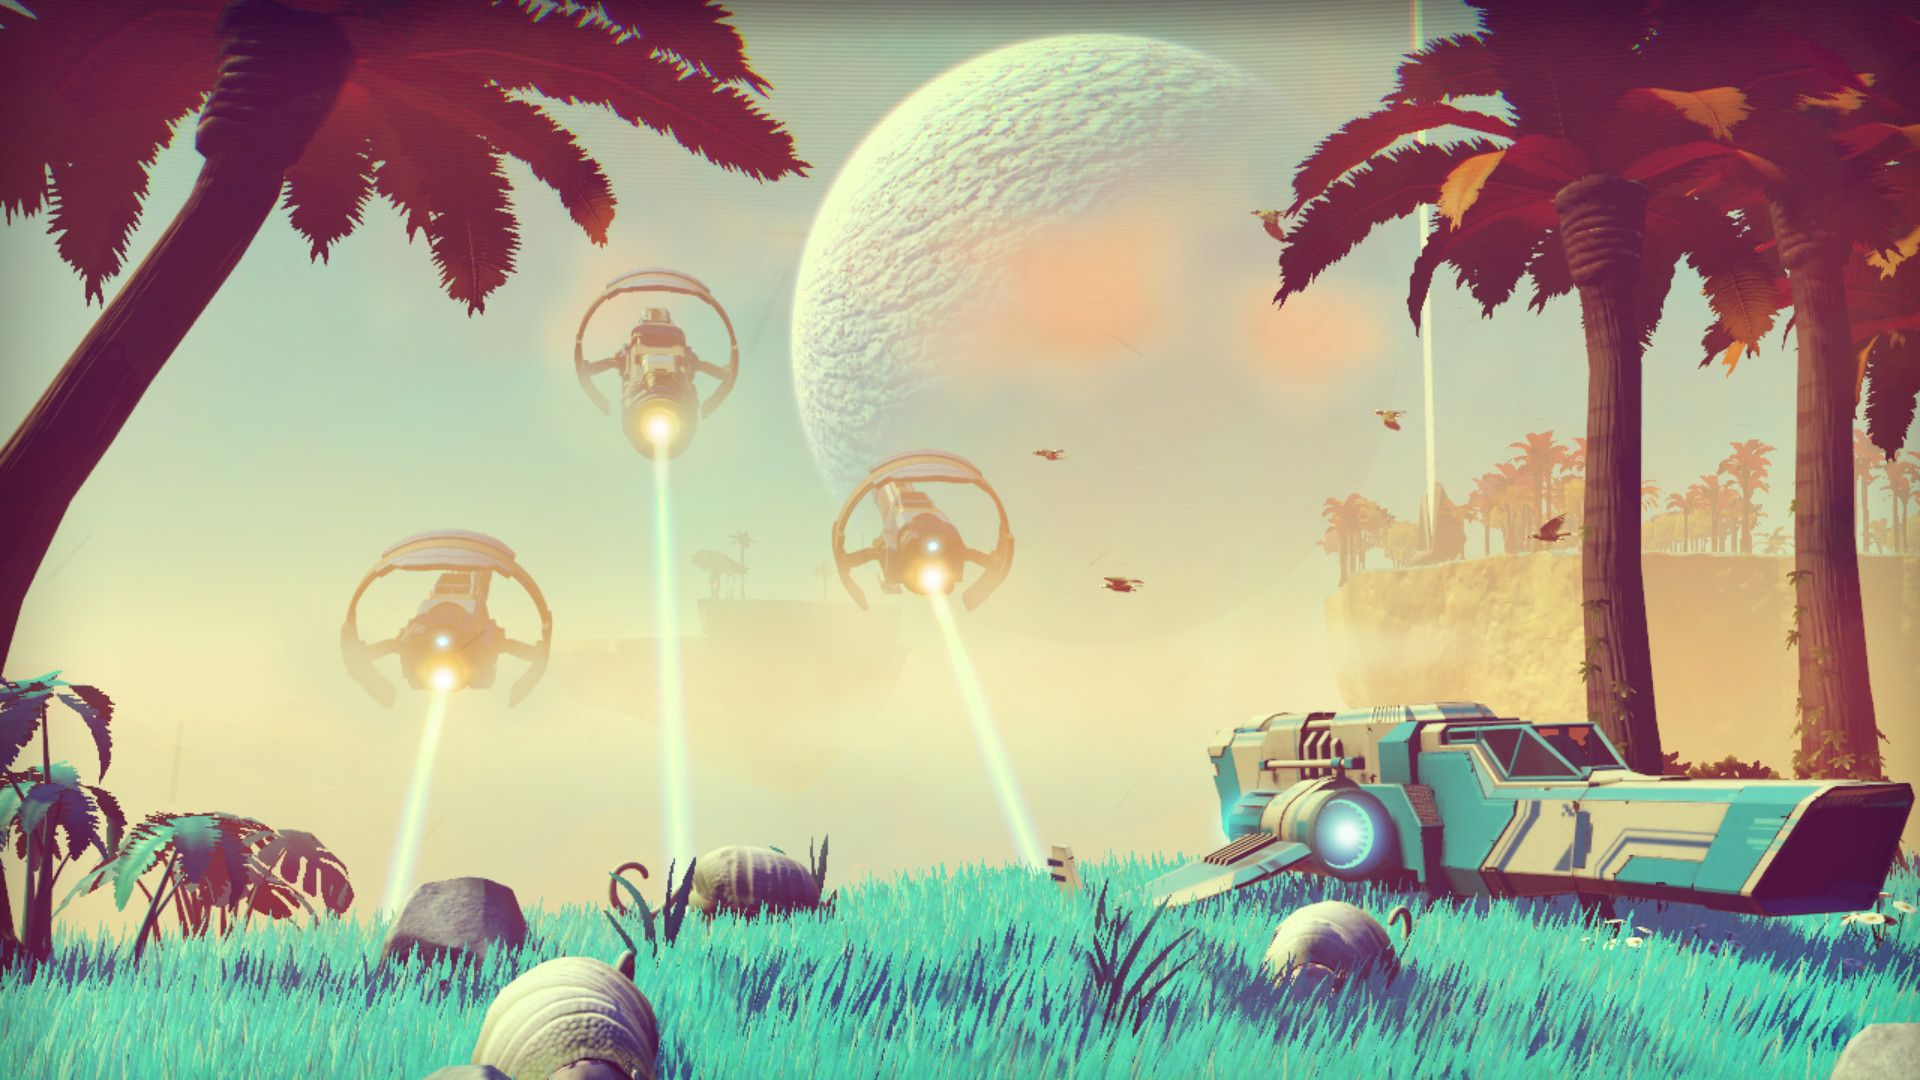 no mans sky screenshot 02 1920.0 How No Mans Sky Nearly Lost Its Name Through Legal Nonsense